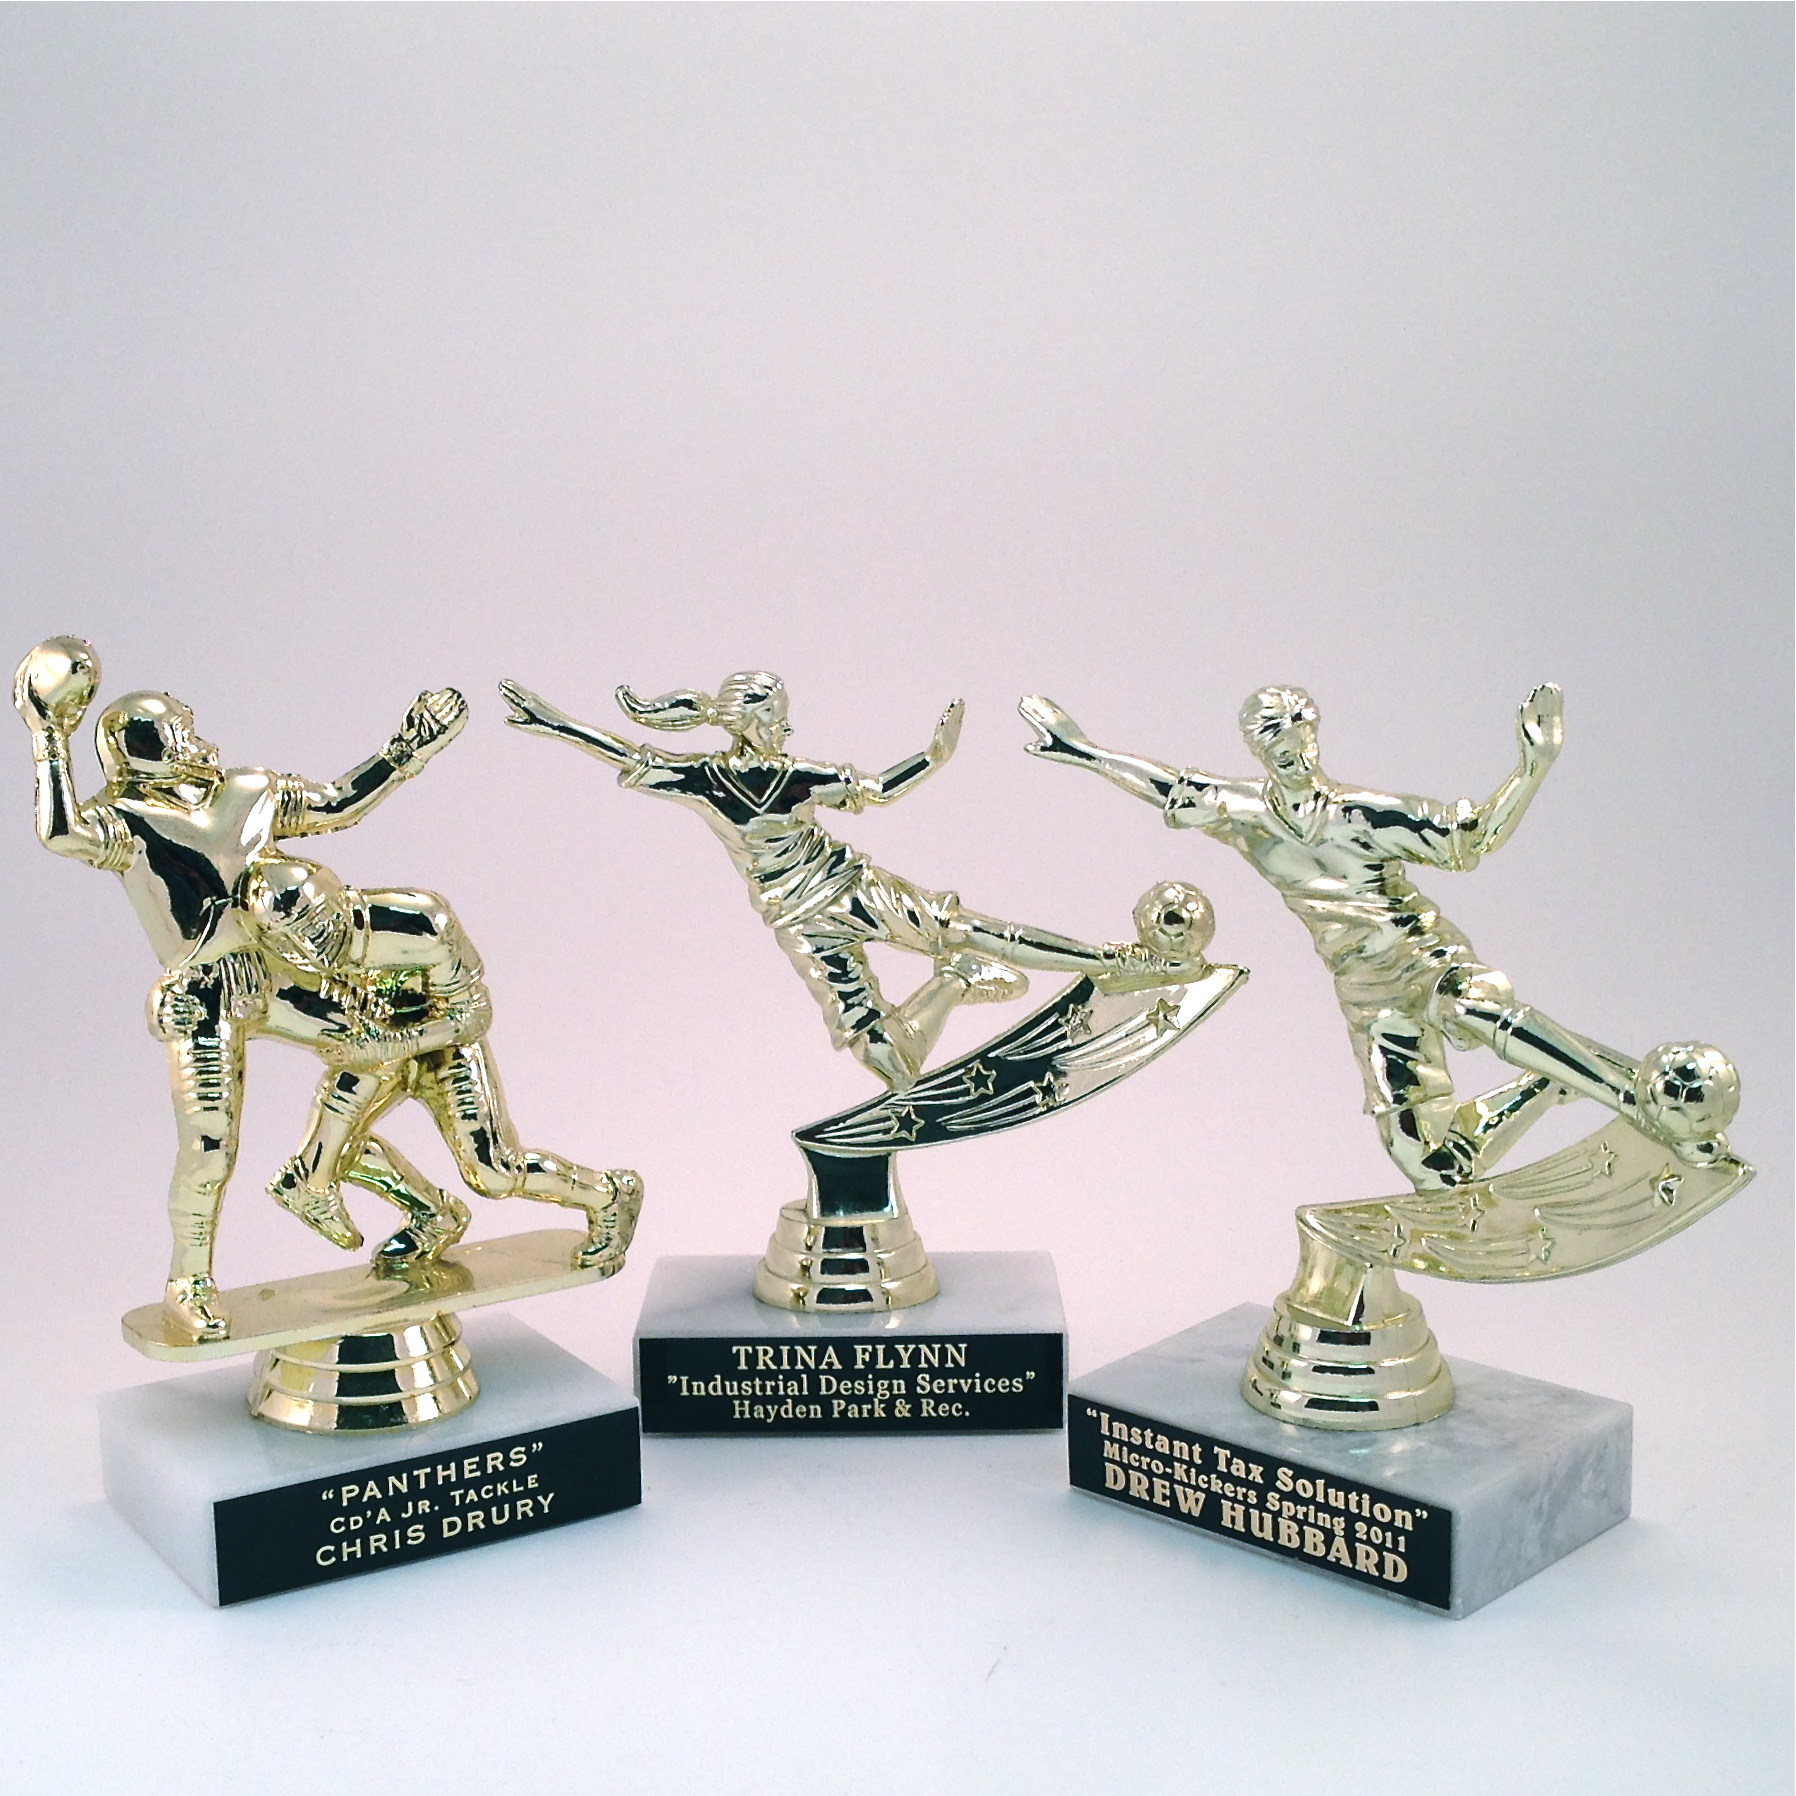 Economy Figures on Marble base - $5.30 each (Includes tax & engraving). [ITEM#:  16E ]